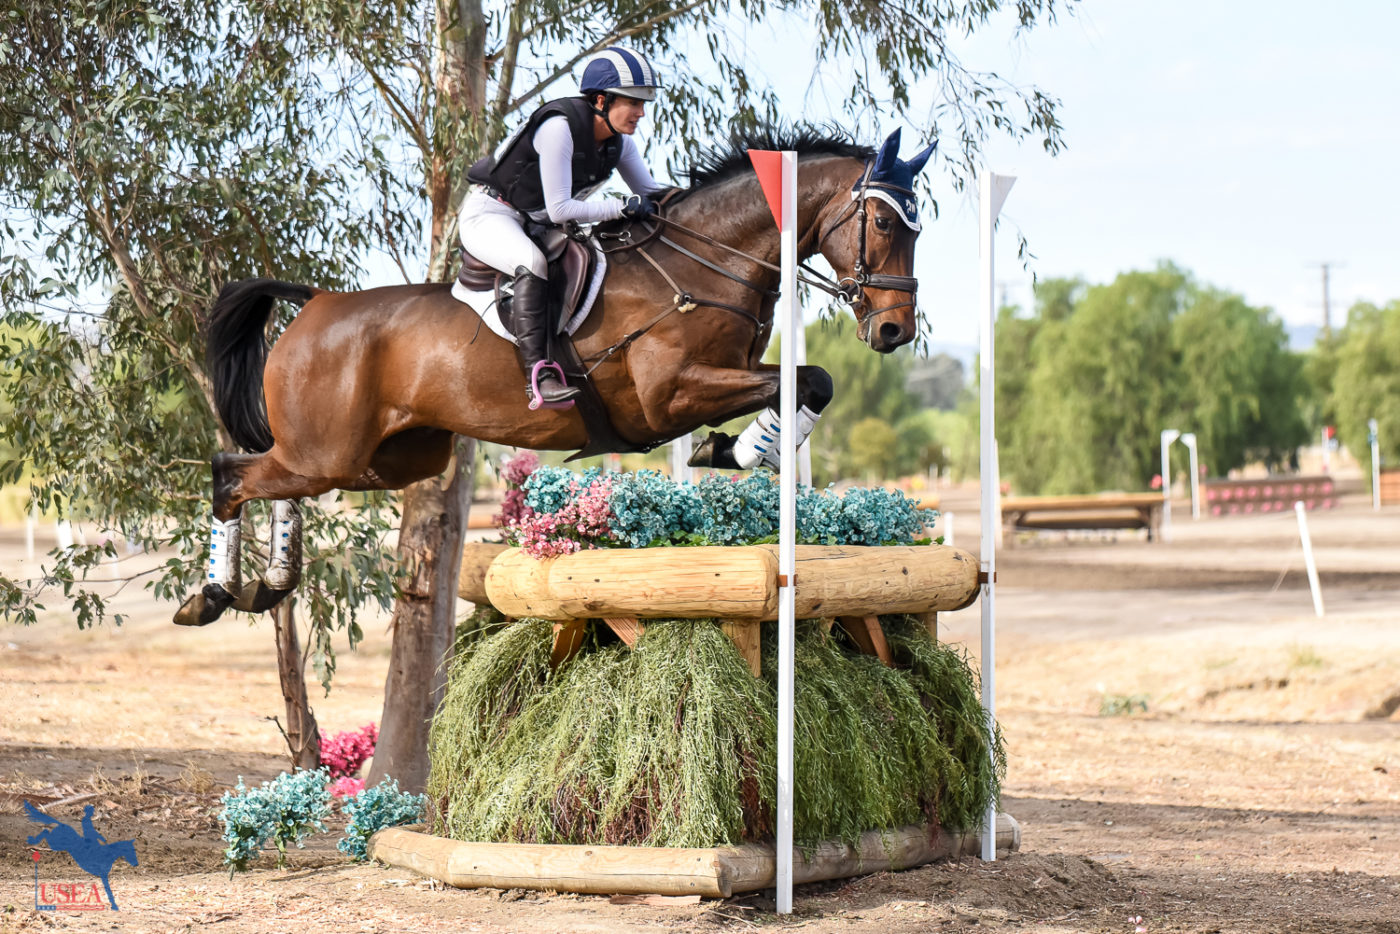 CCI3*-L  3rd - Erin Kellerhouse and Woodford Reserve - 32.9